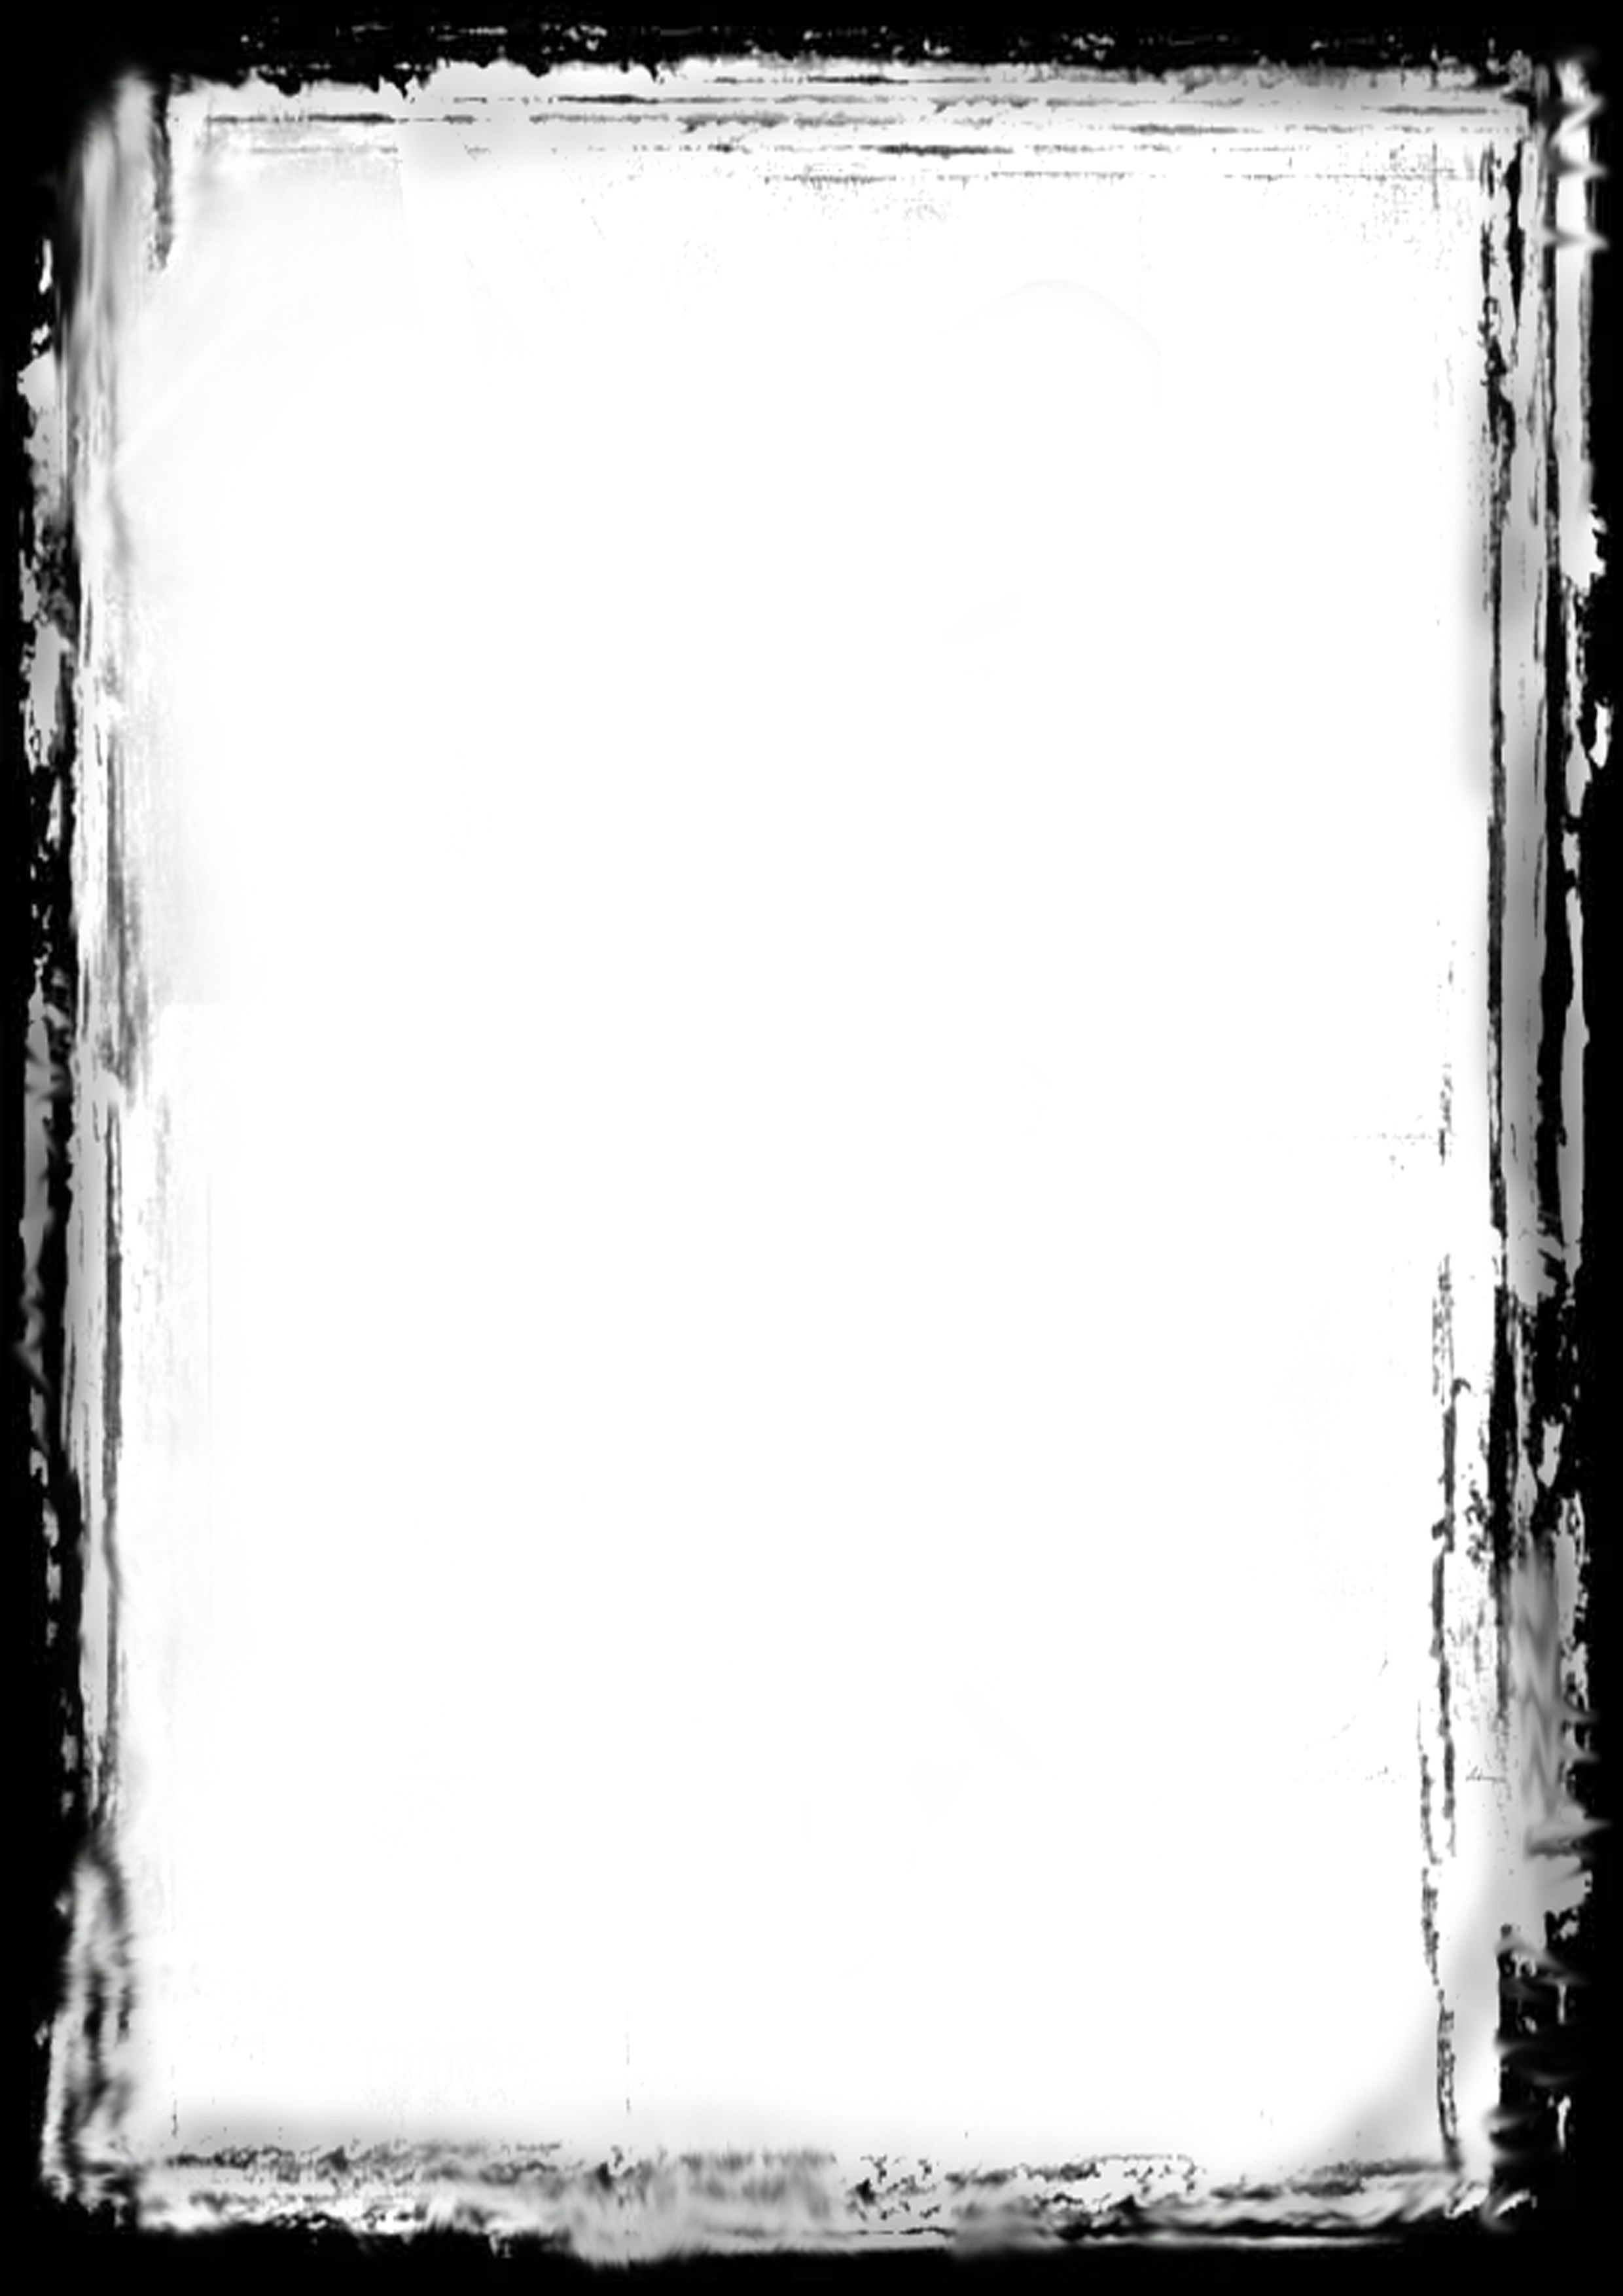 Free Photoshop Frames And Borders Downloads